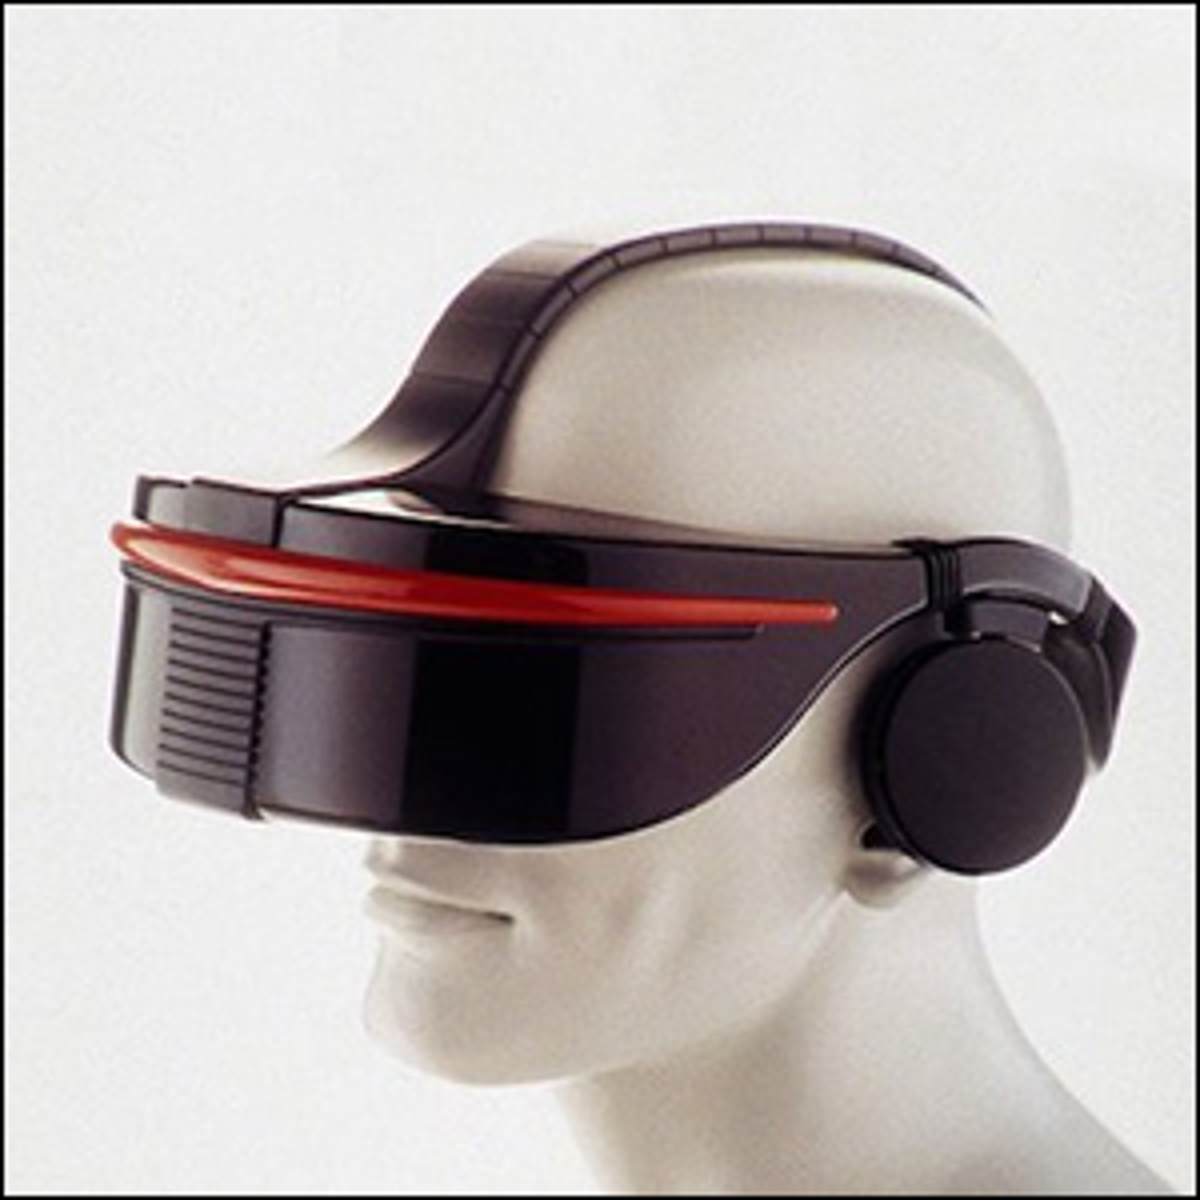 A photo of what the Sega VR headset would look like.